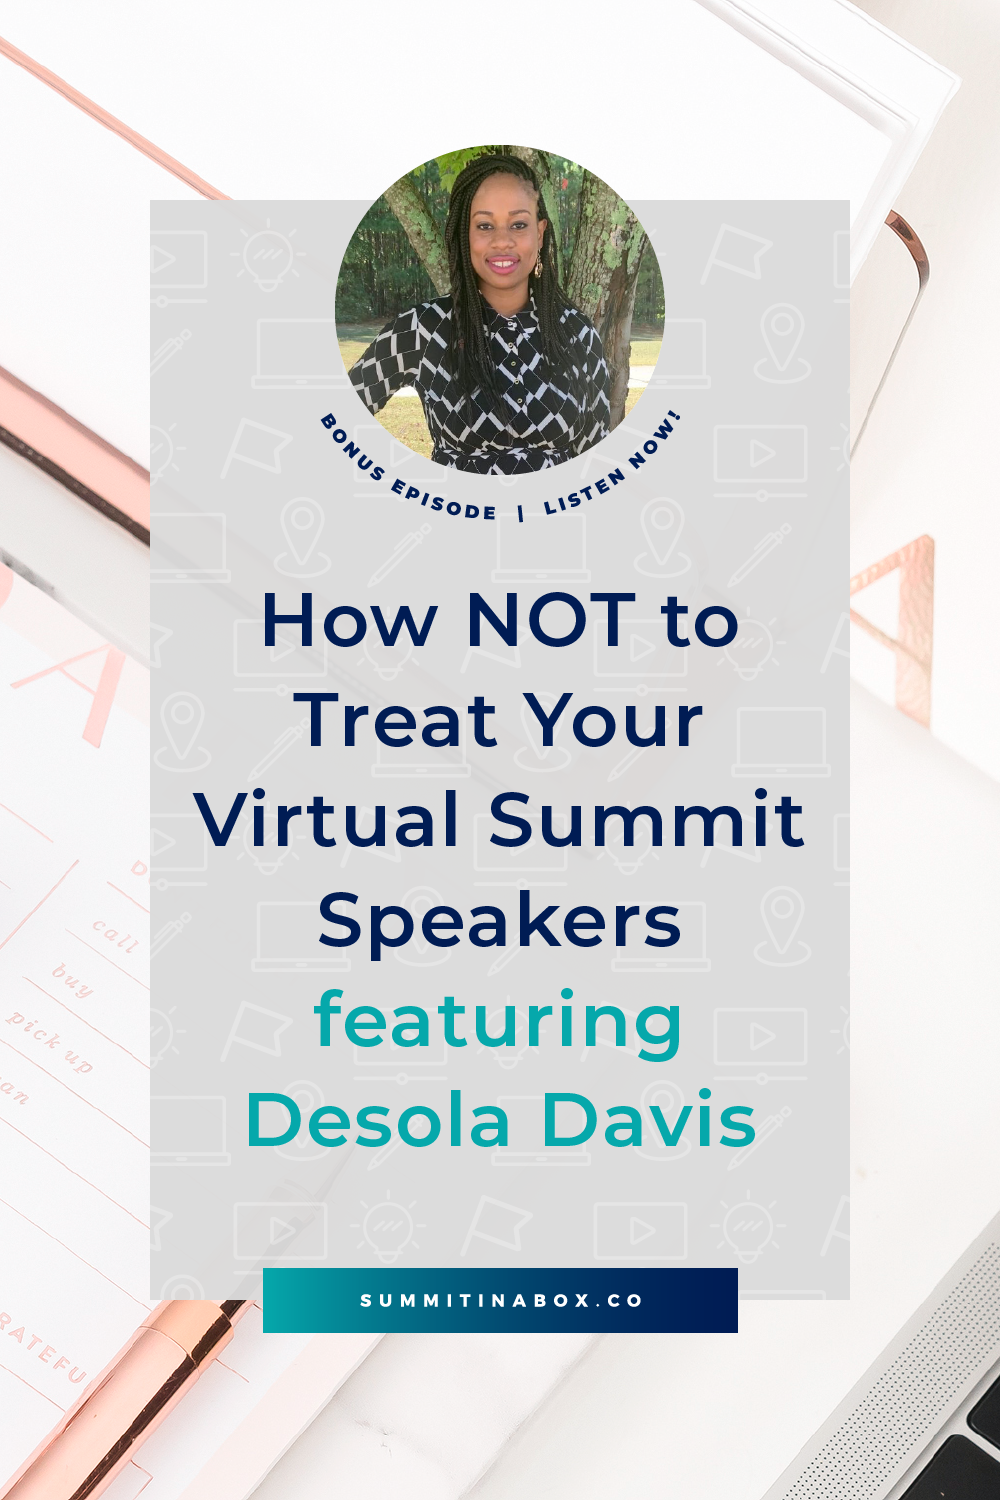 You wouldn't have a summit if it weren't for your speakers. Let's chat about how NOT to treat your virtual summit speakers and go through an extreme example.